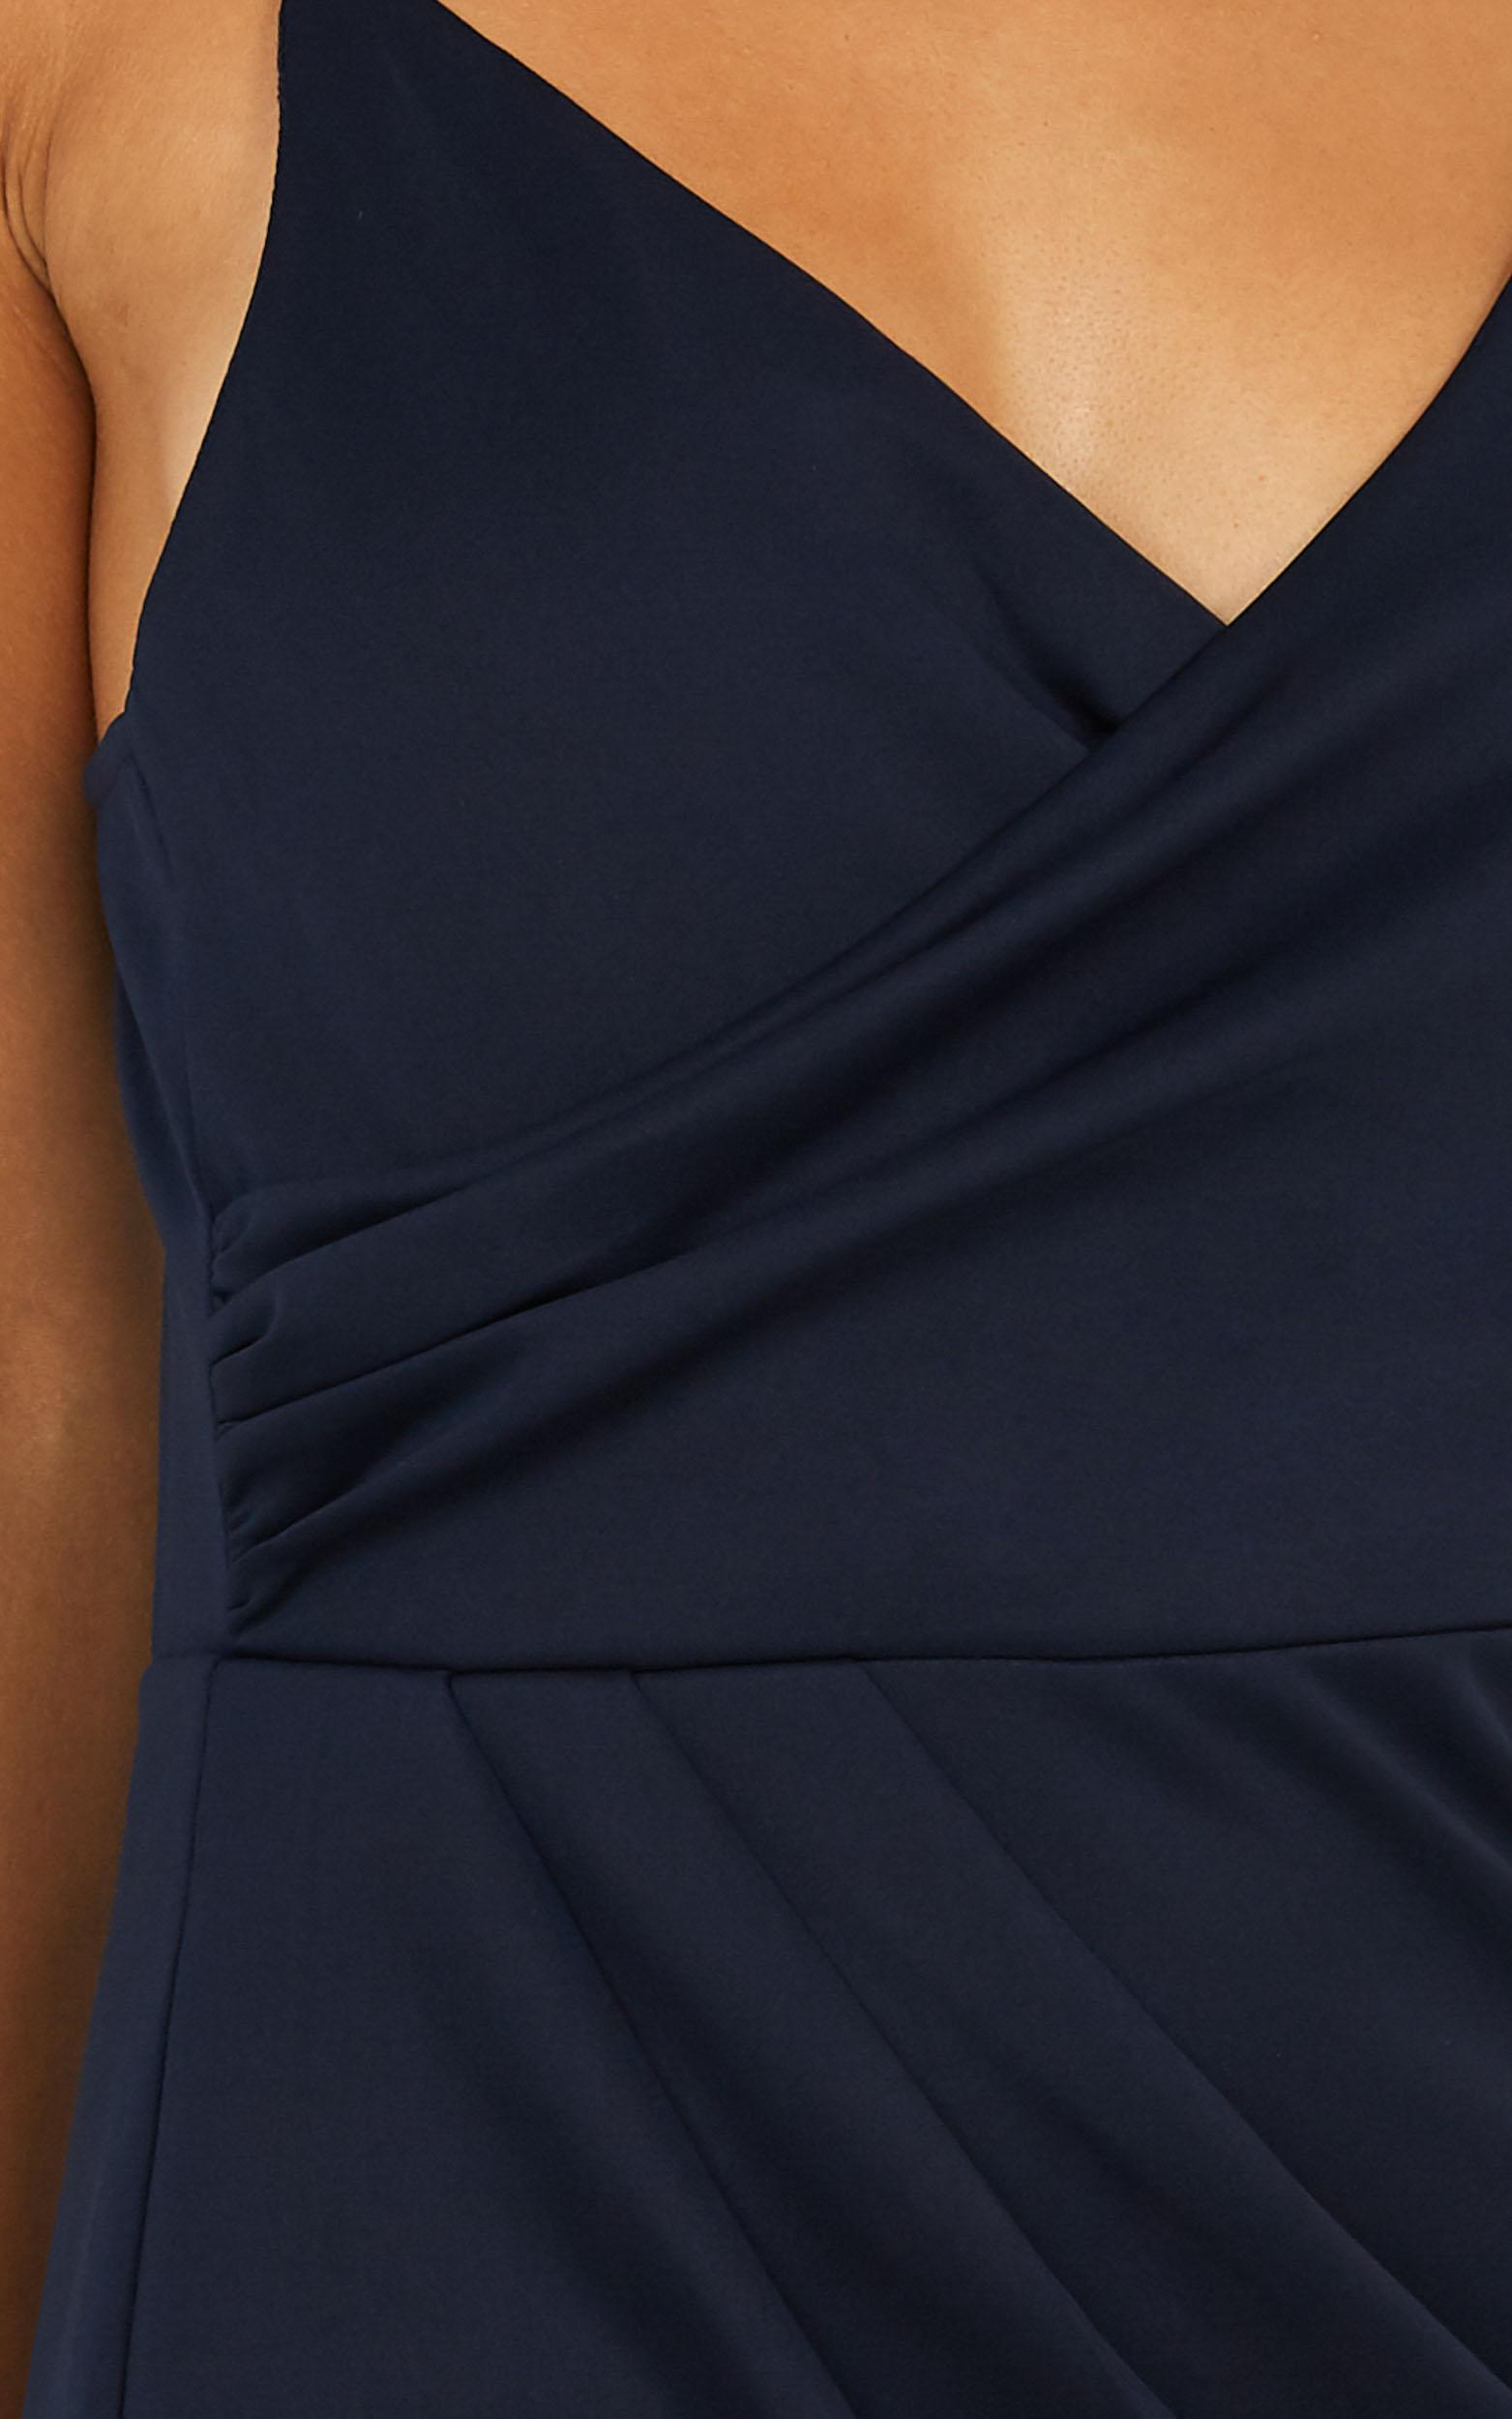 Linking Love Maxi Dress In Navy - 4 (XXS), Navy, hi-res image number null